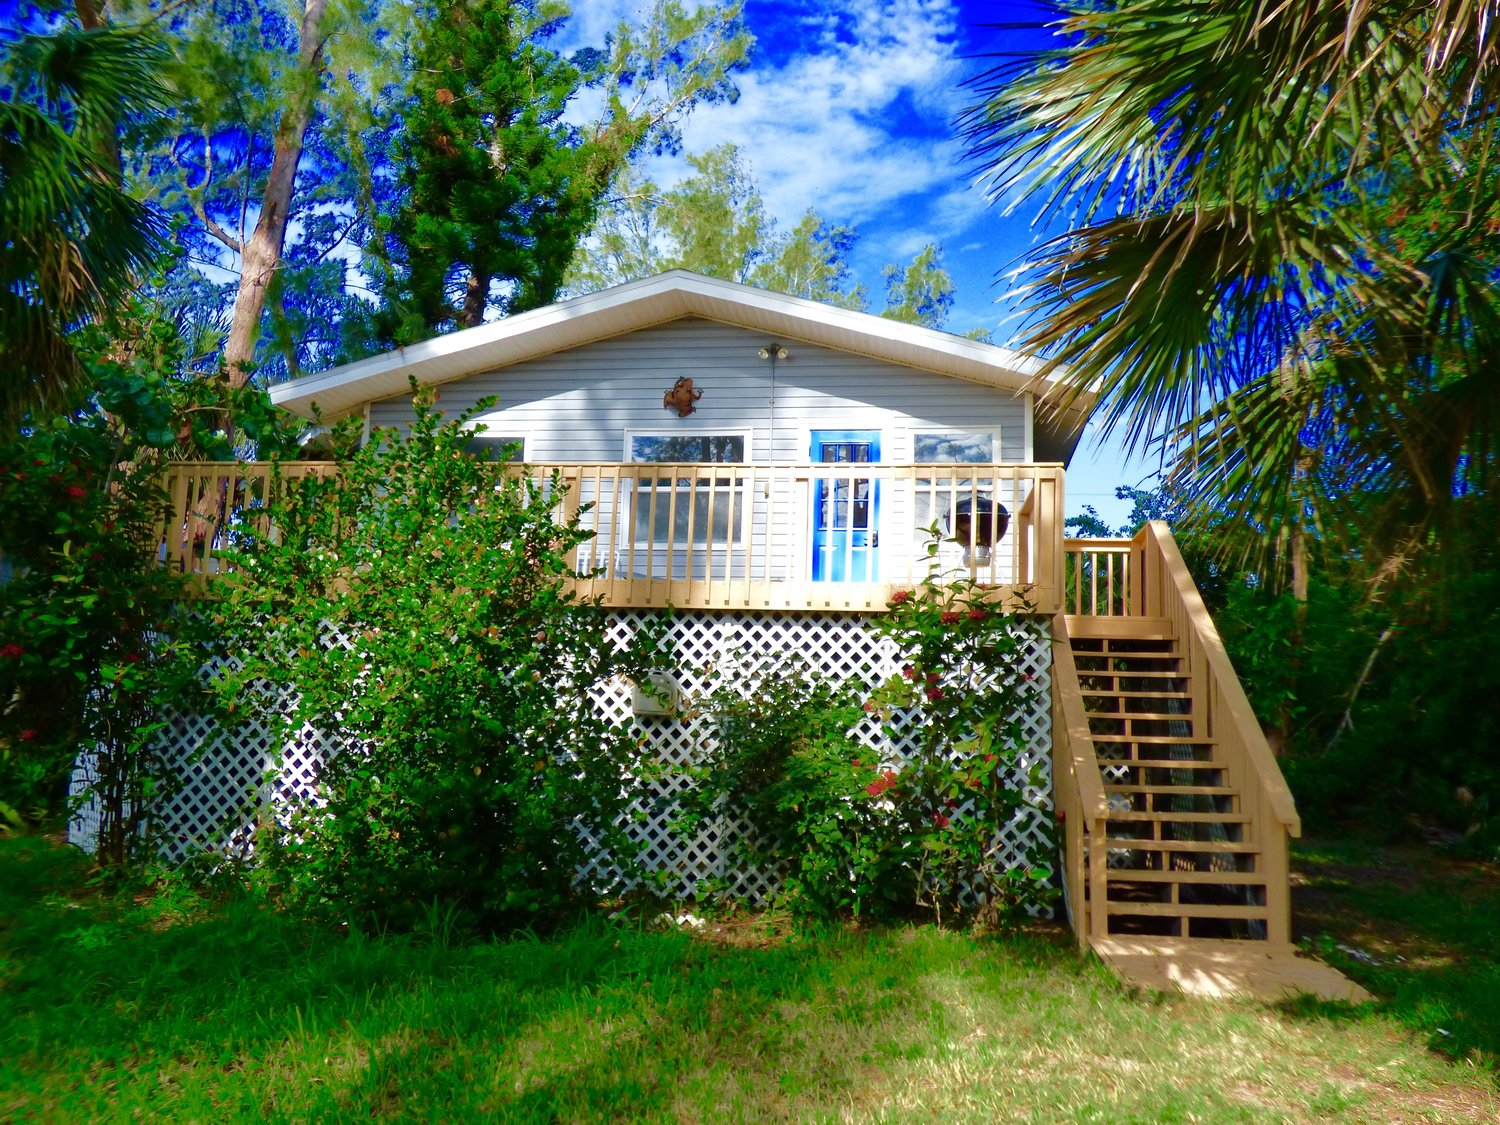 Hammock Haven - 2-Bedroom, 1 BathKING BED, QUEEN BED, AND TWO TWIN DAYBEDS, SLEEPS 4-6